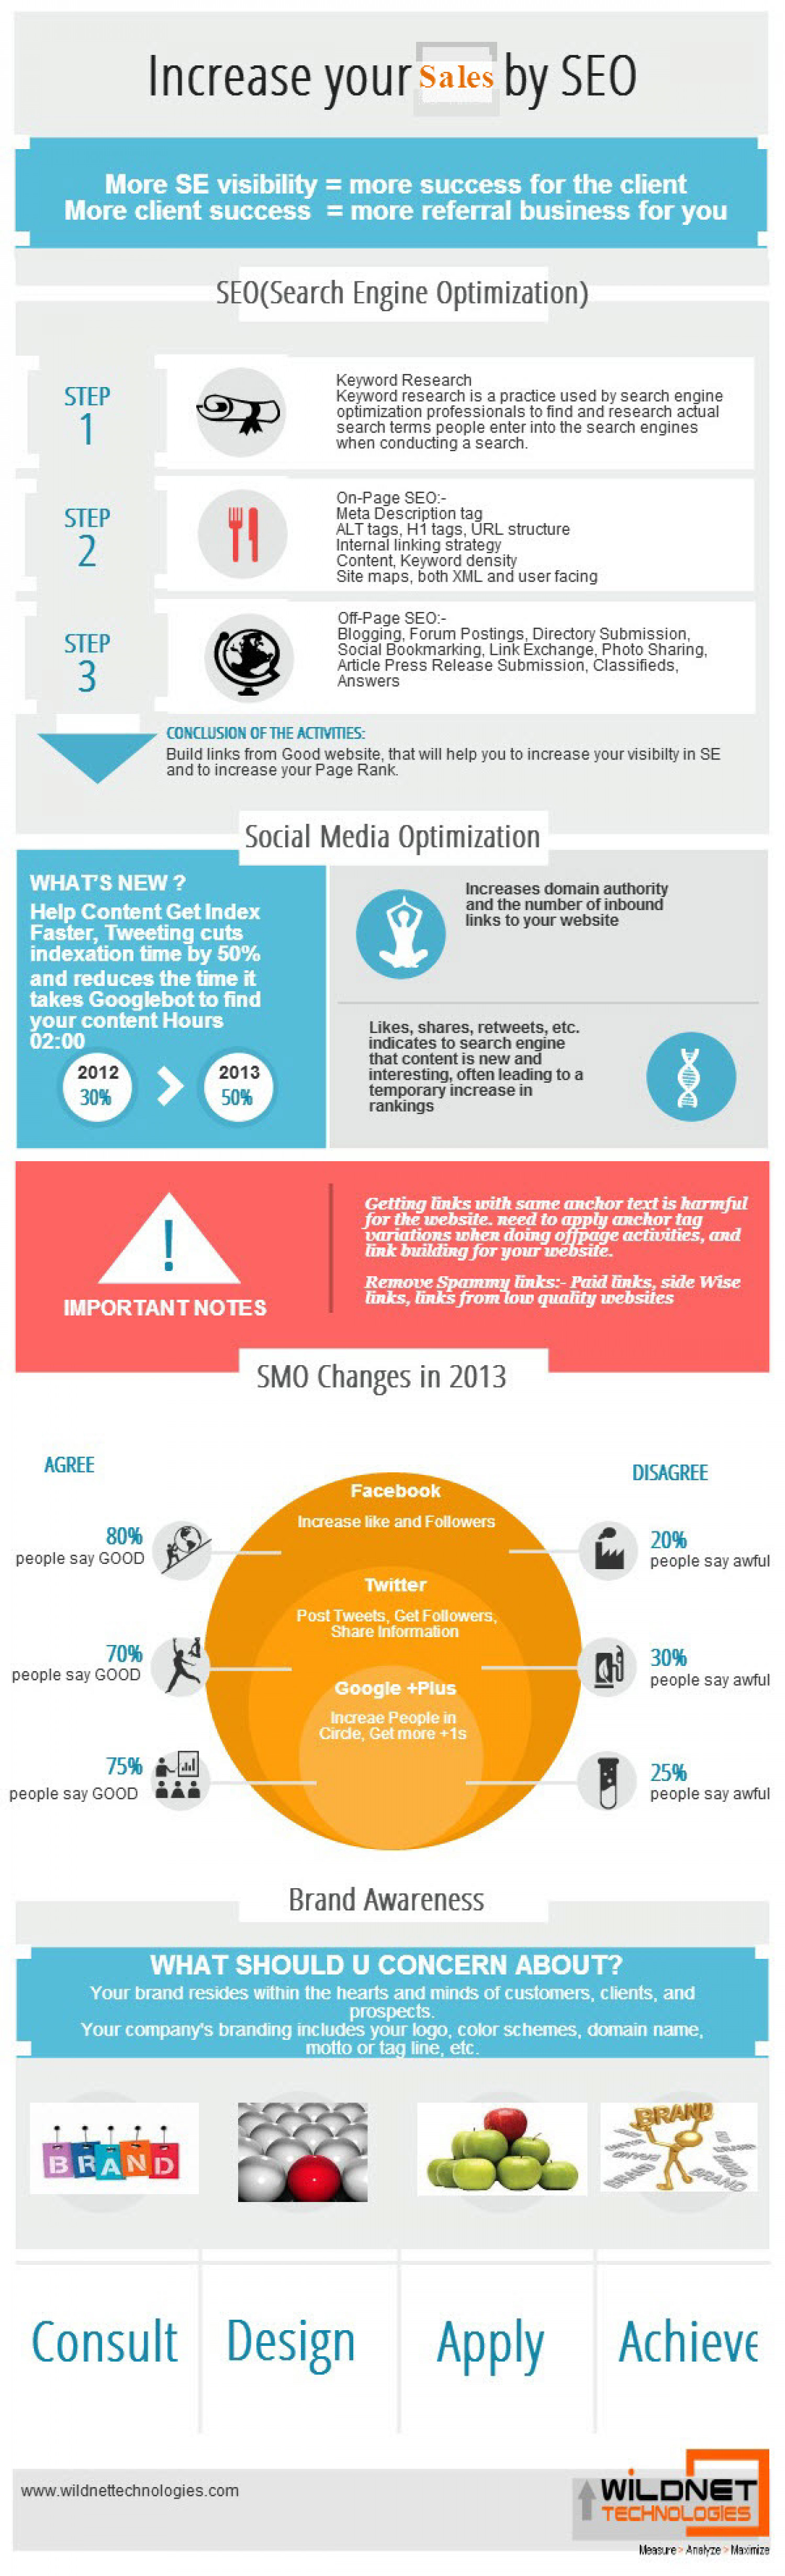 Increase your Sales by SEO and SMO Infographic